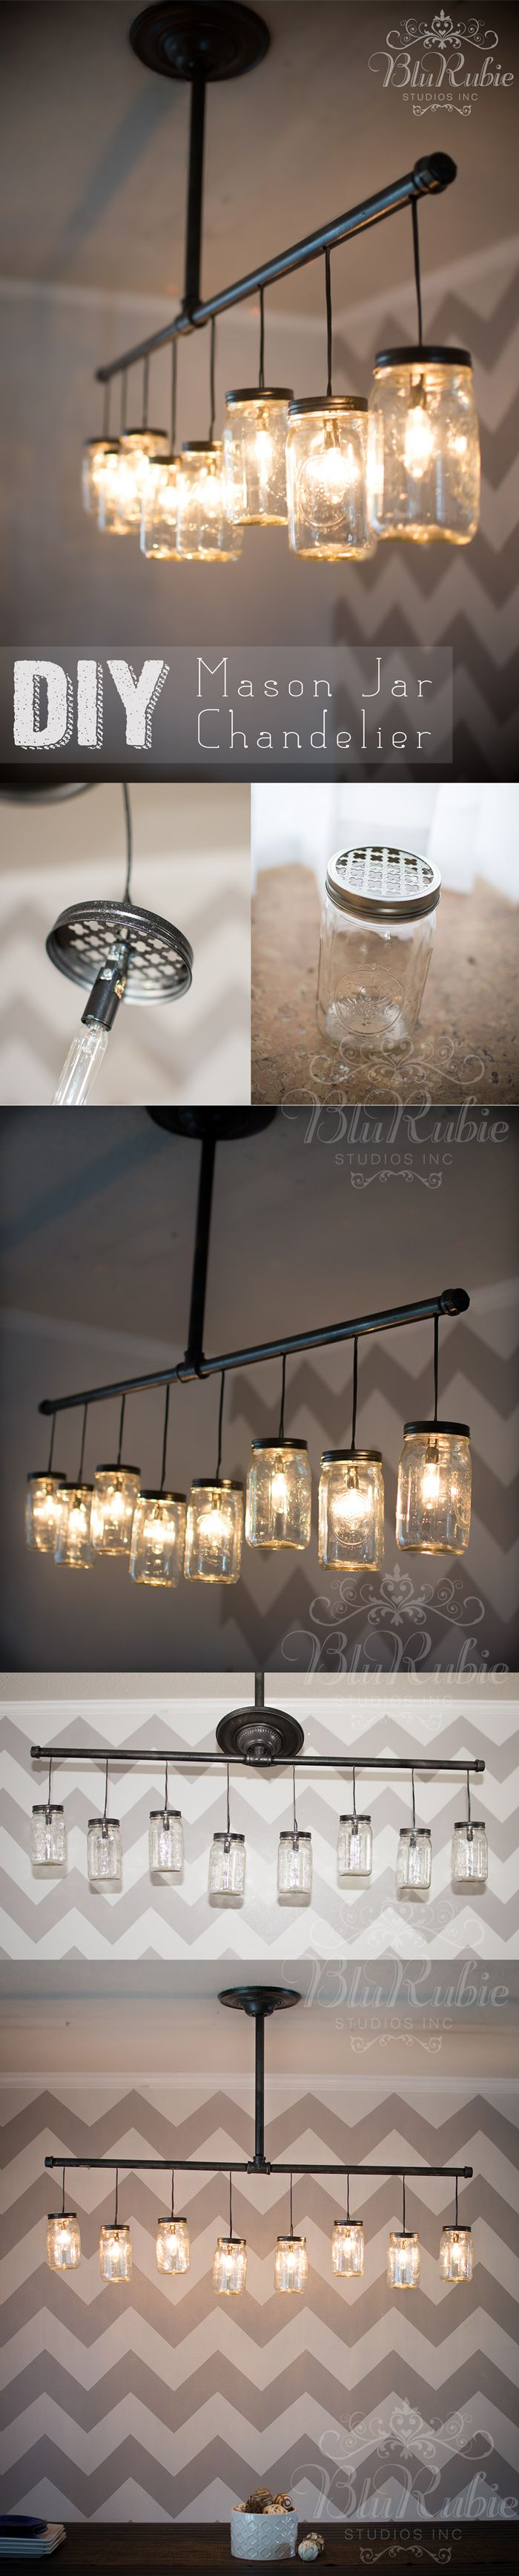 Pensacola Photography and Design | BluRubie Studios | DIY Mason Jar Chandelier, Light